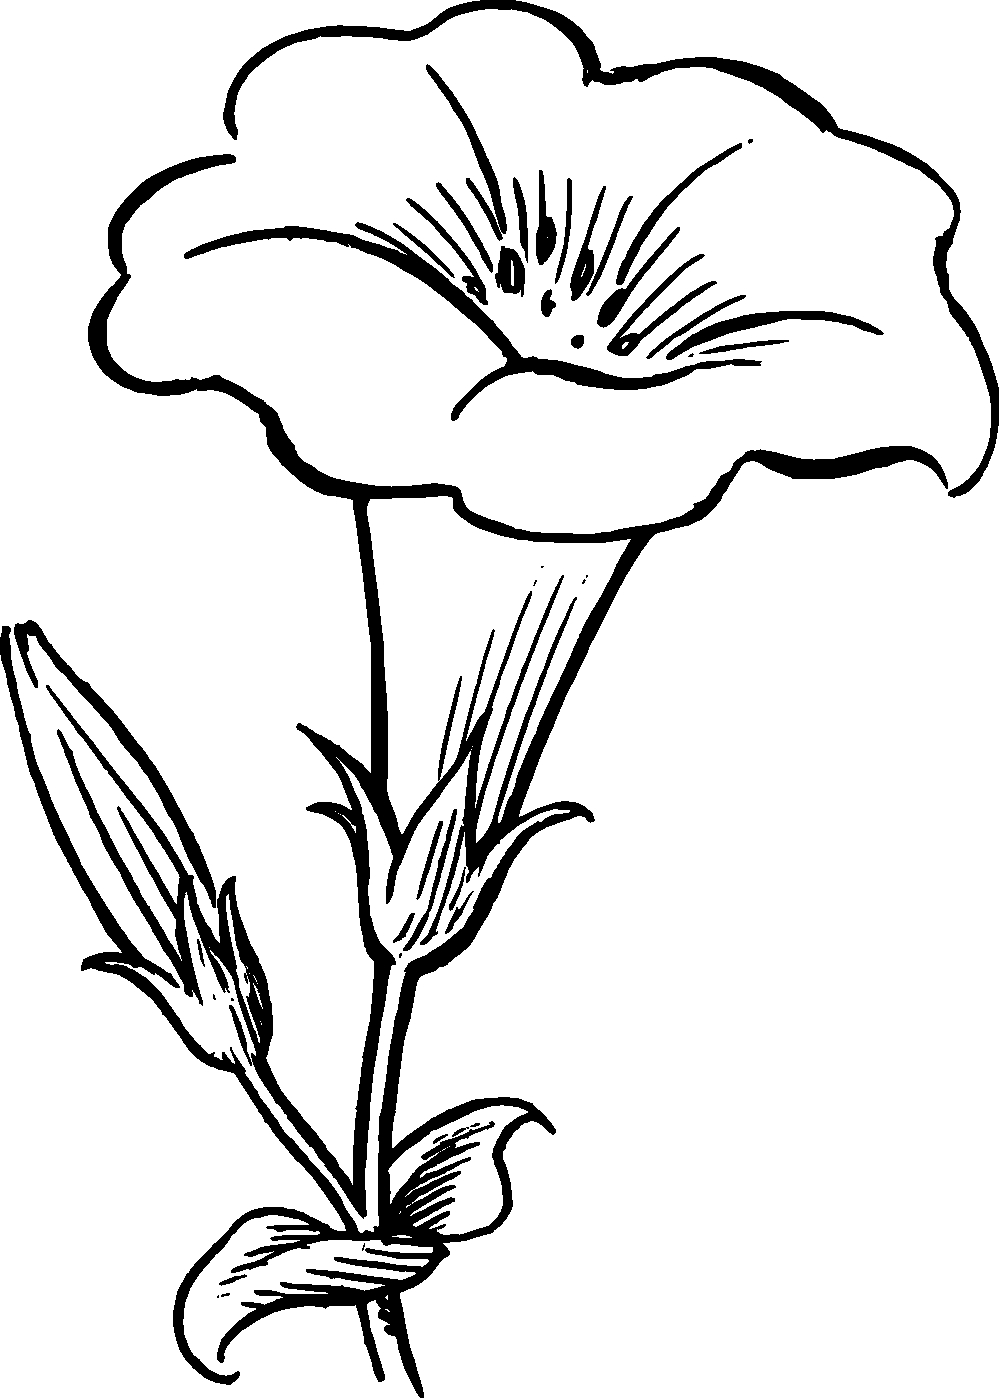 Eletragesi Daffodil Clipart Black and White Gallery Of Daffodil Coloring Pages Gallery